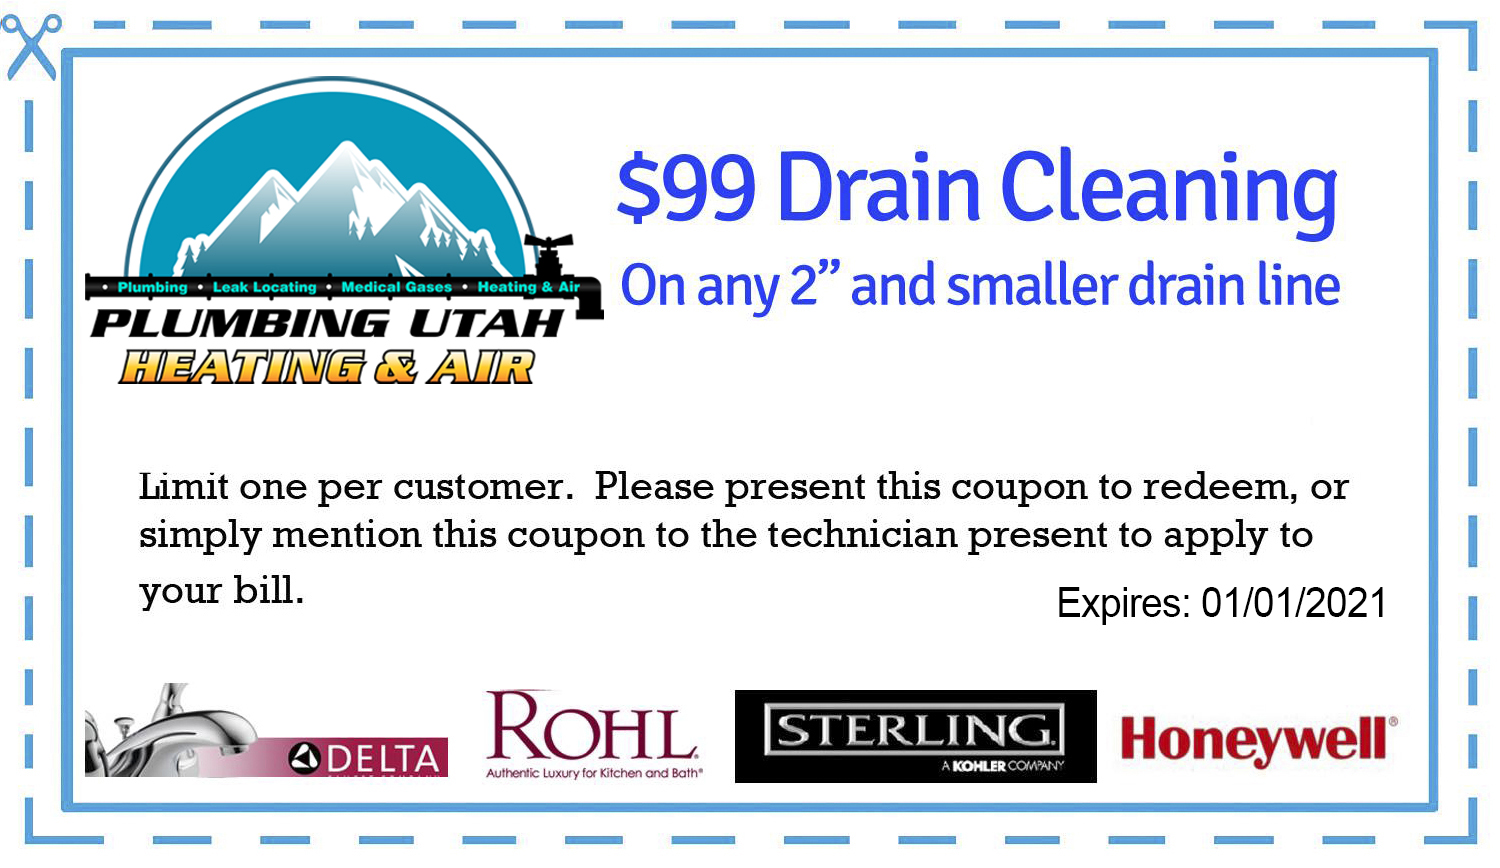 plumbing-utah-hvac-coupon-99-drain-cleaning